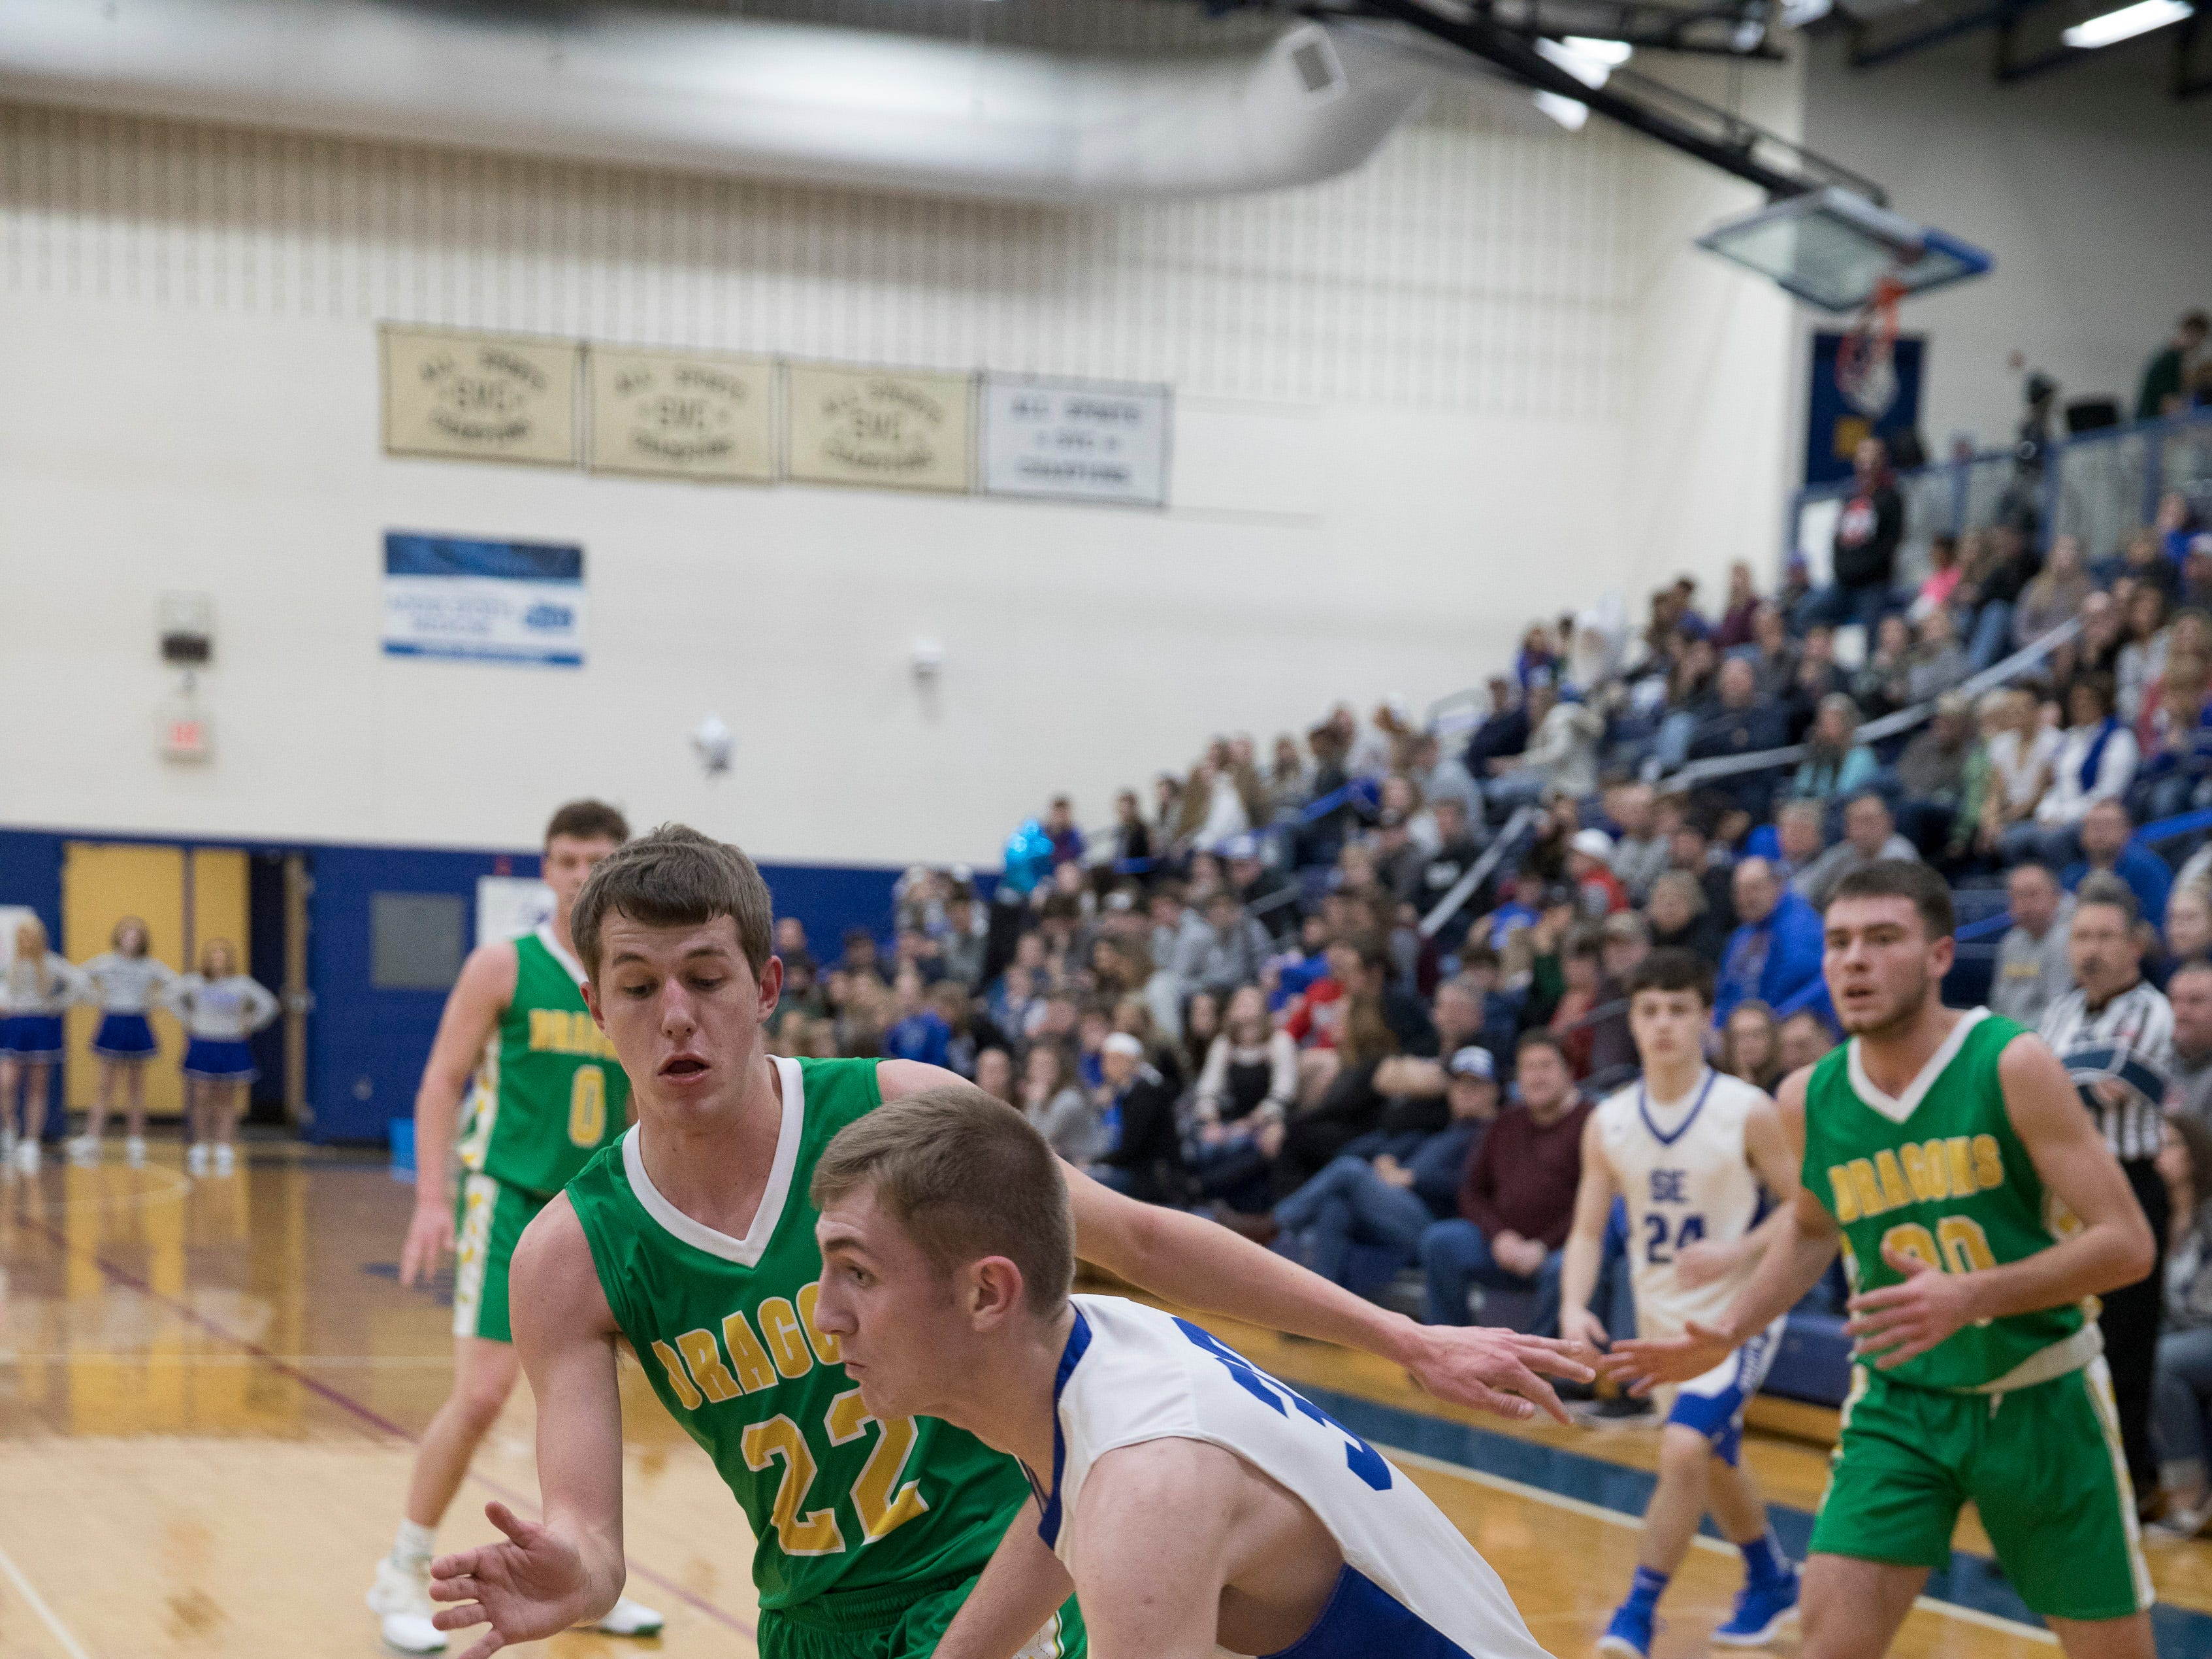 Southeastern defeated West Union 64-56 Saturday night at Southeastern High School.